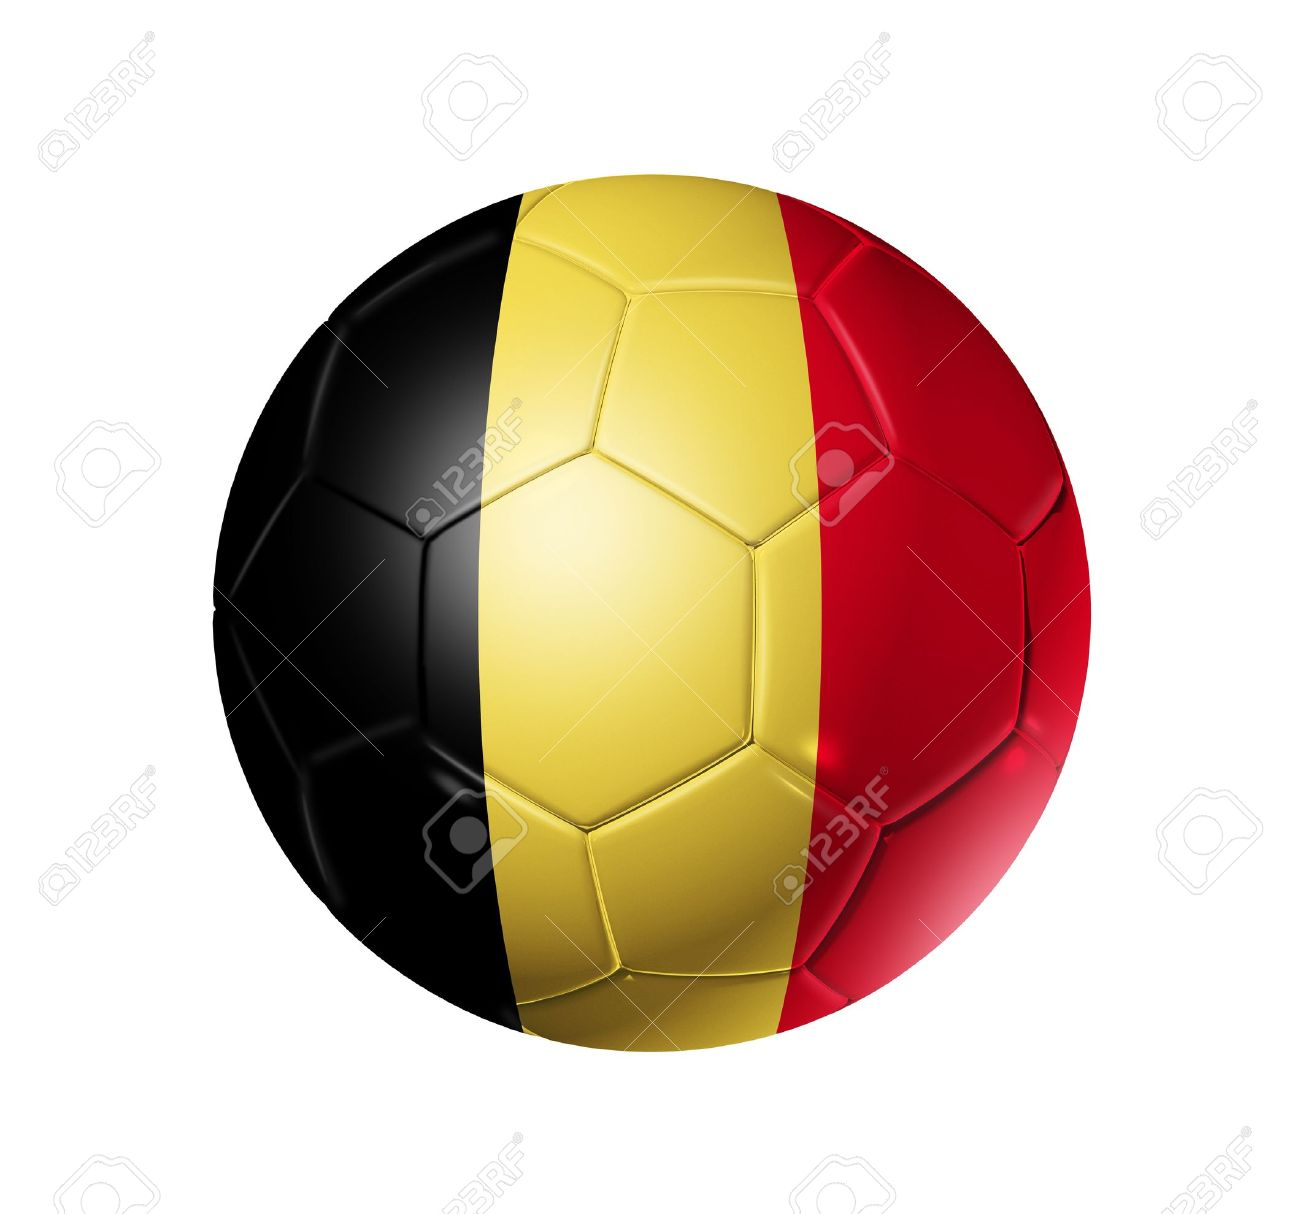 3D soccer ball with Belgium team flag. isolated on white with clipping path Stock Photo - 9804935